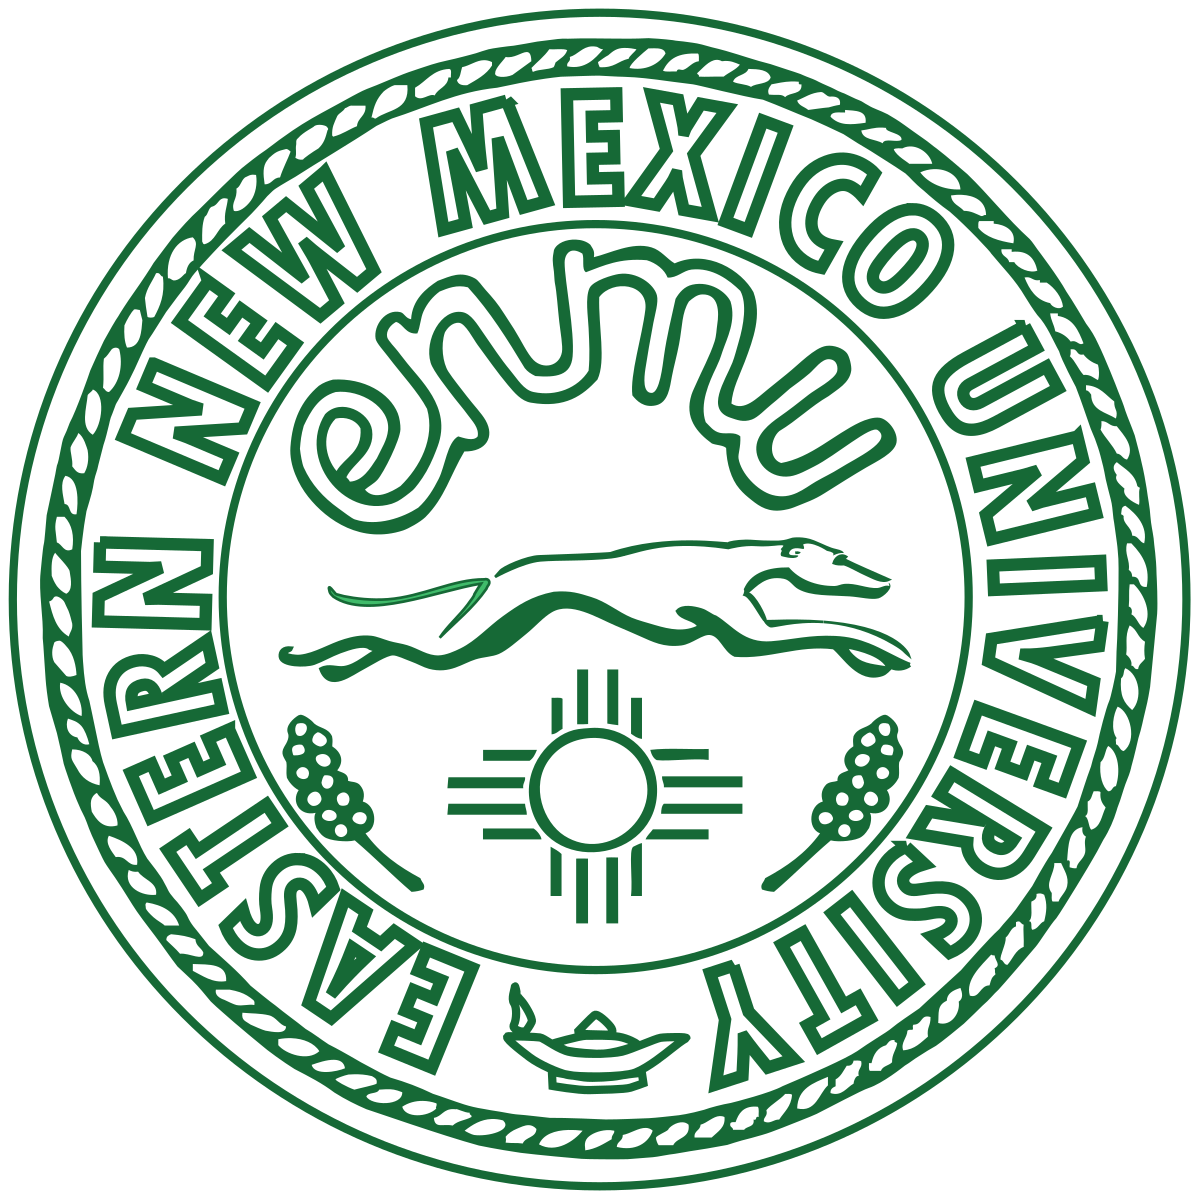 Eastern New Mexico University – Top 50 Affordable Online Graduate Sports Administration Degree Programs 2021